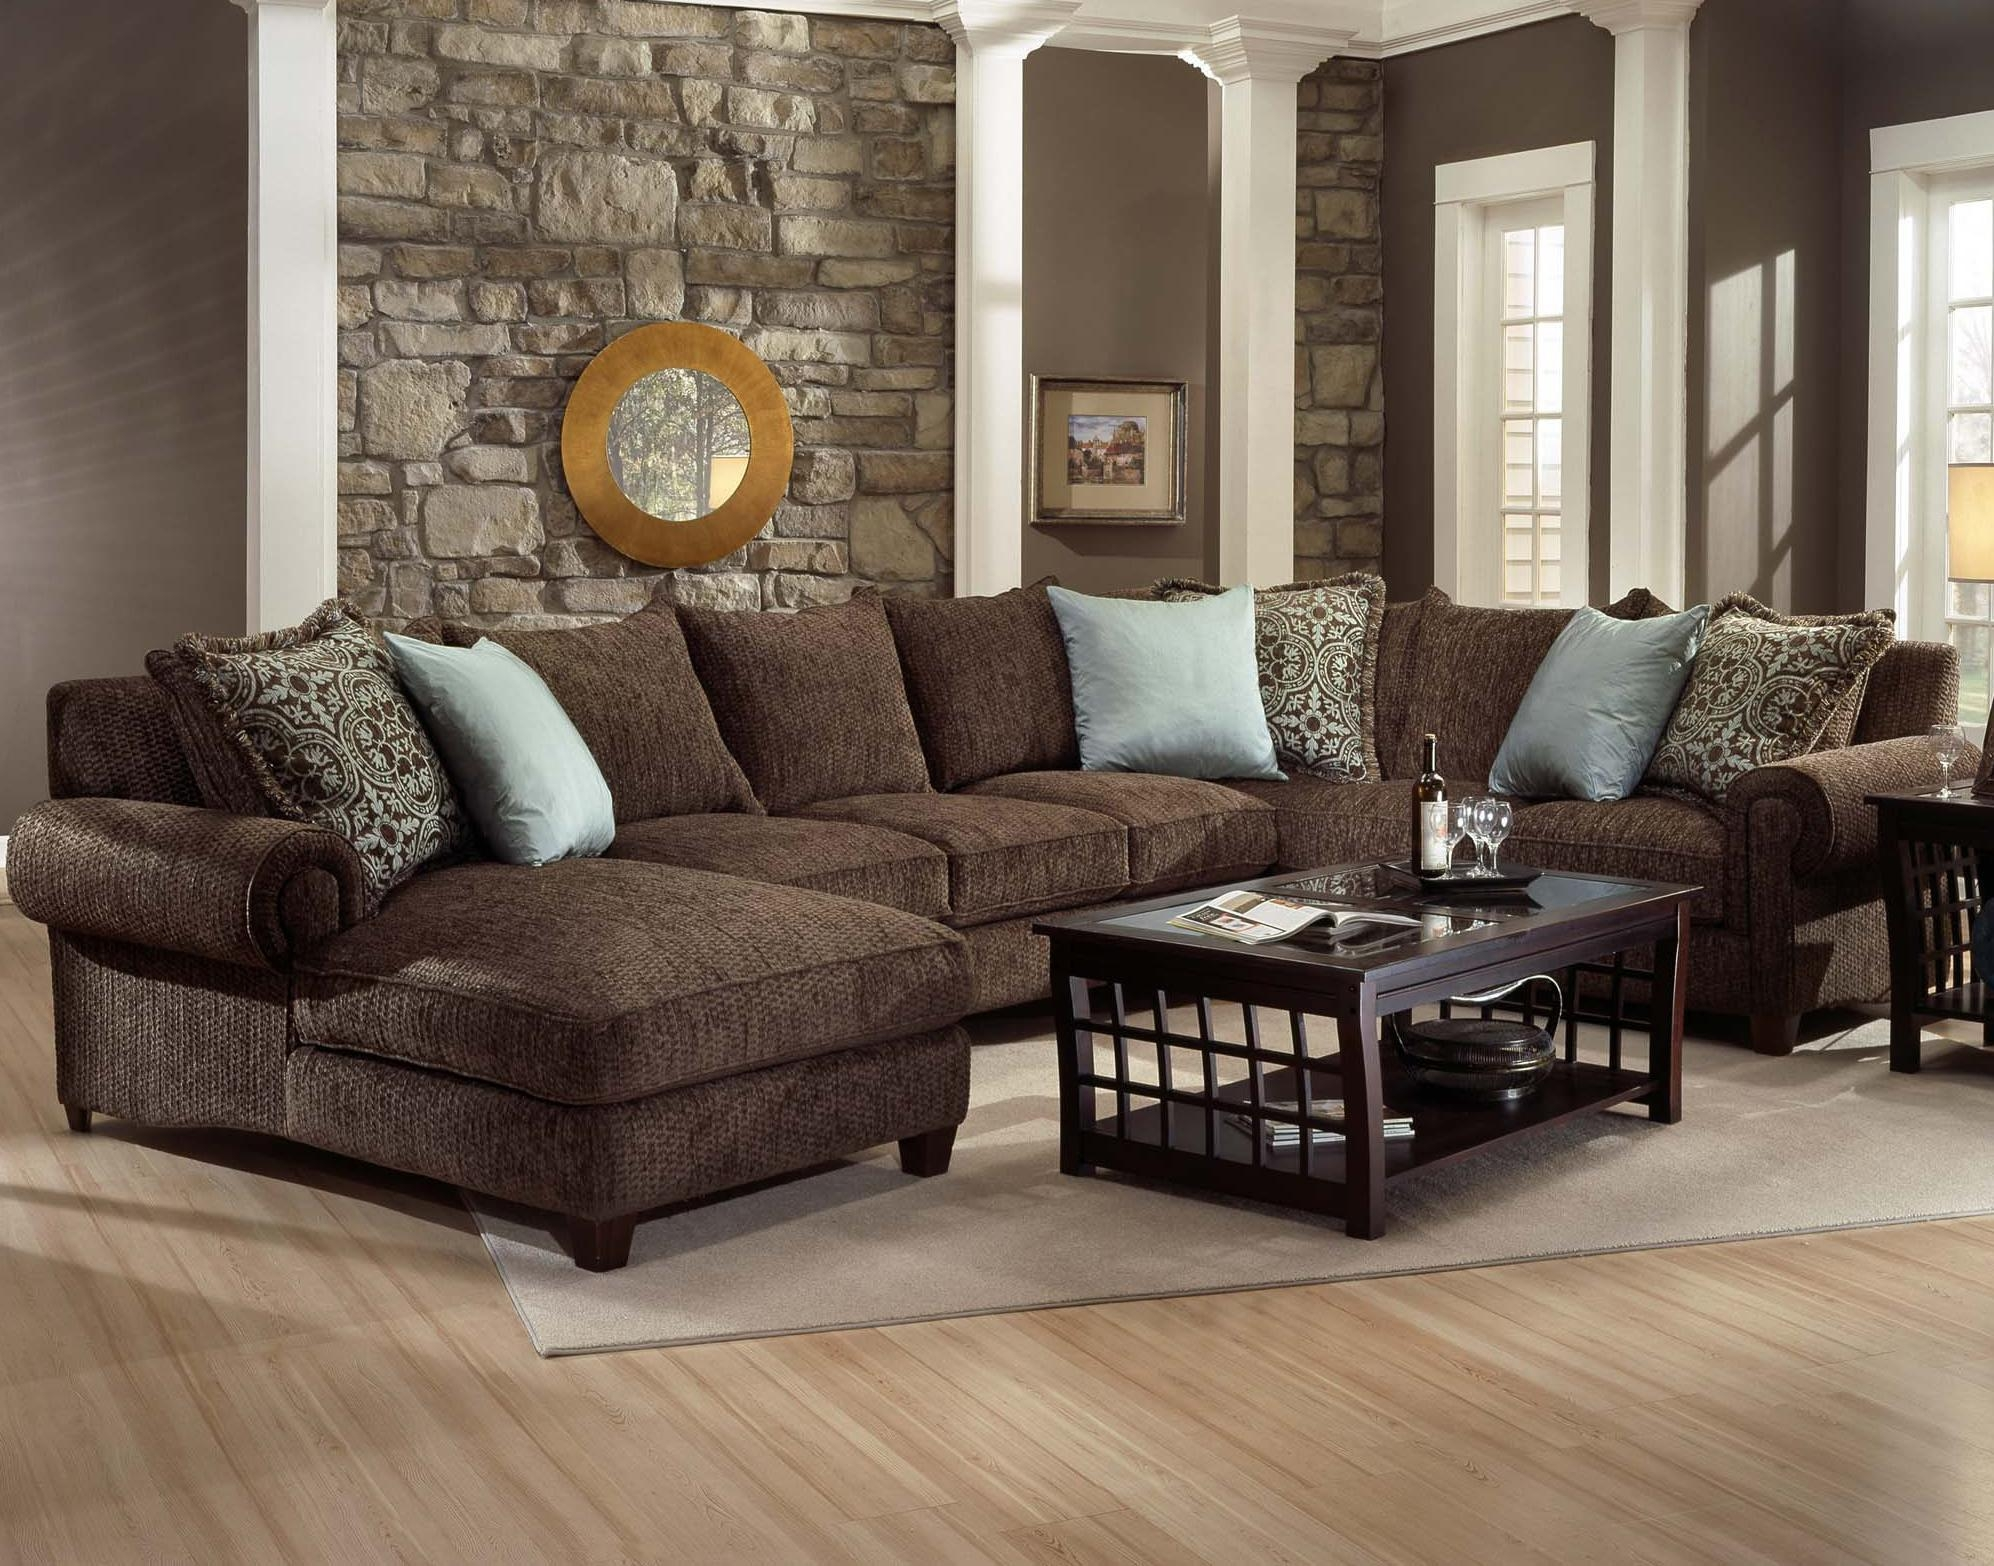 Decor: Artificial Classic Corduroy Sectional Sofa For Unique With Deep Sectionals (View 9 of 15)